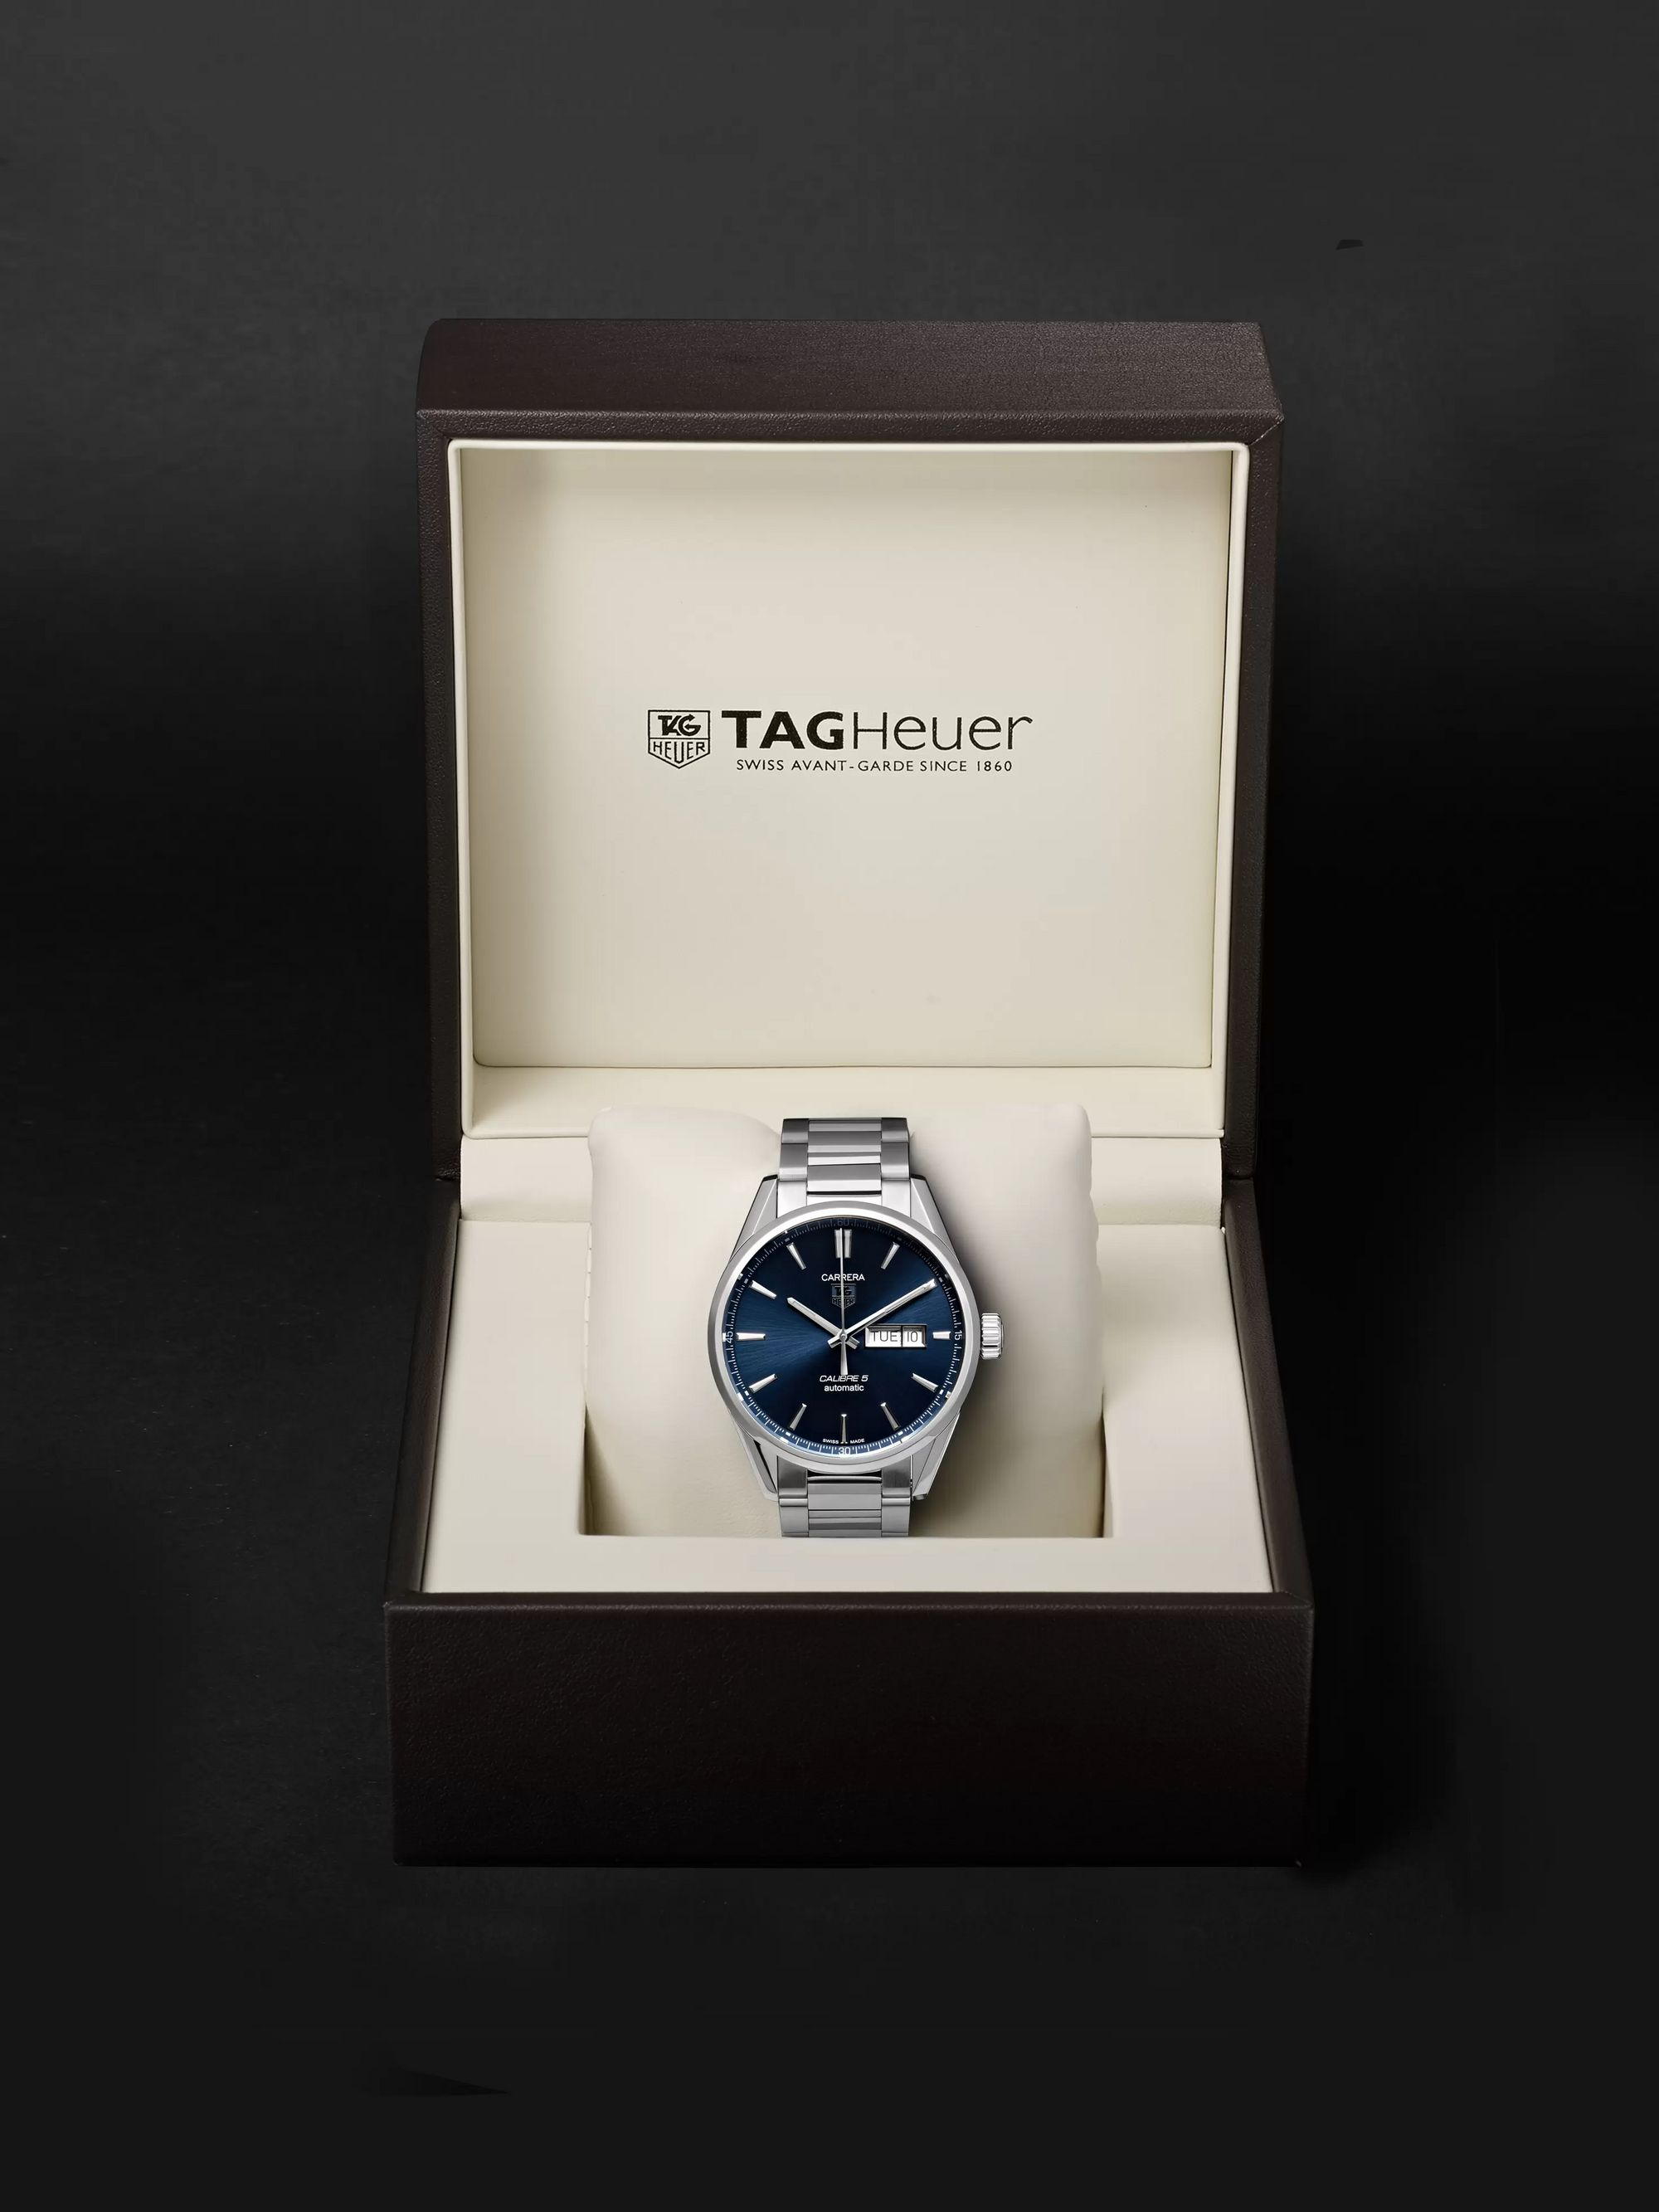 TAG Heuer Carrera Automatic 41mm Steel Watch, Ref. No. WAR201E.BA0723